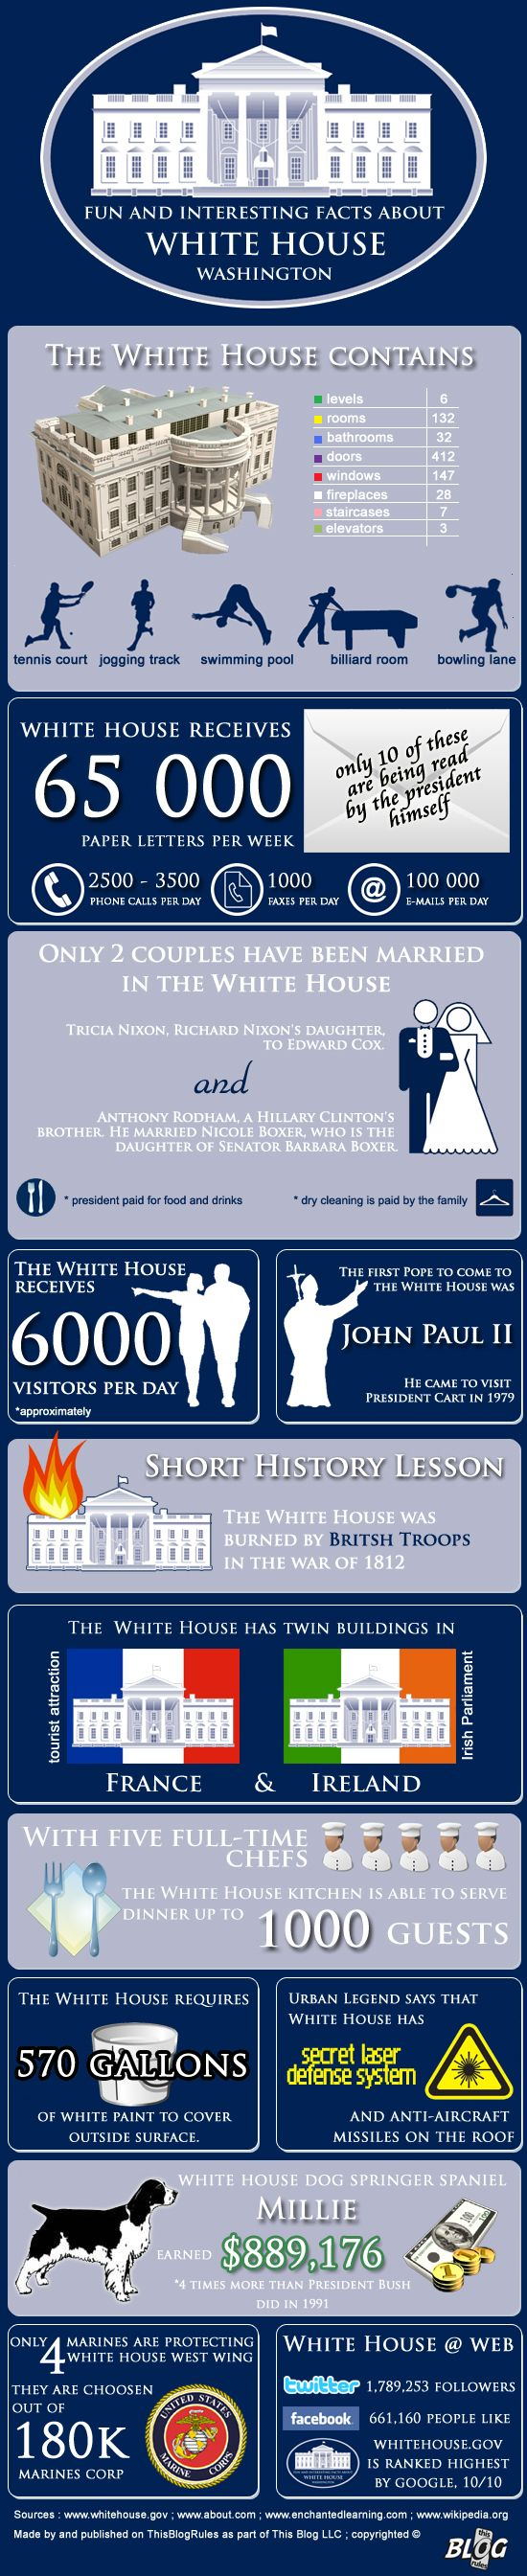 Fun and interesting facts about White House in blue and white